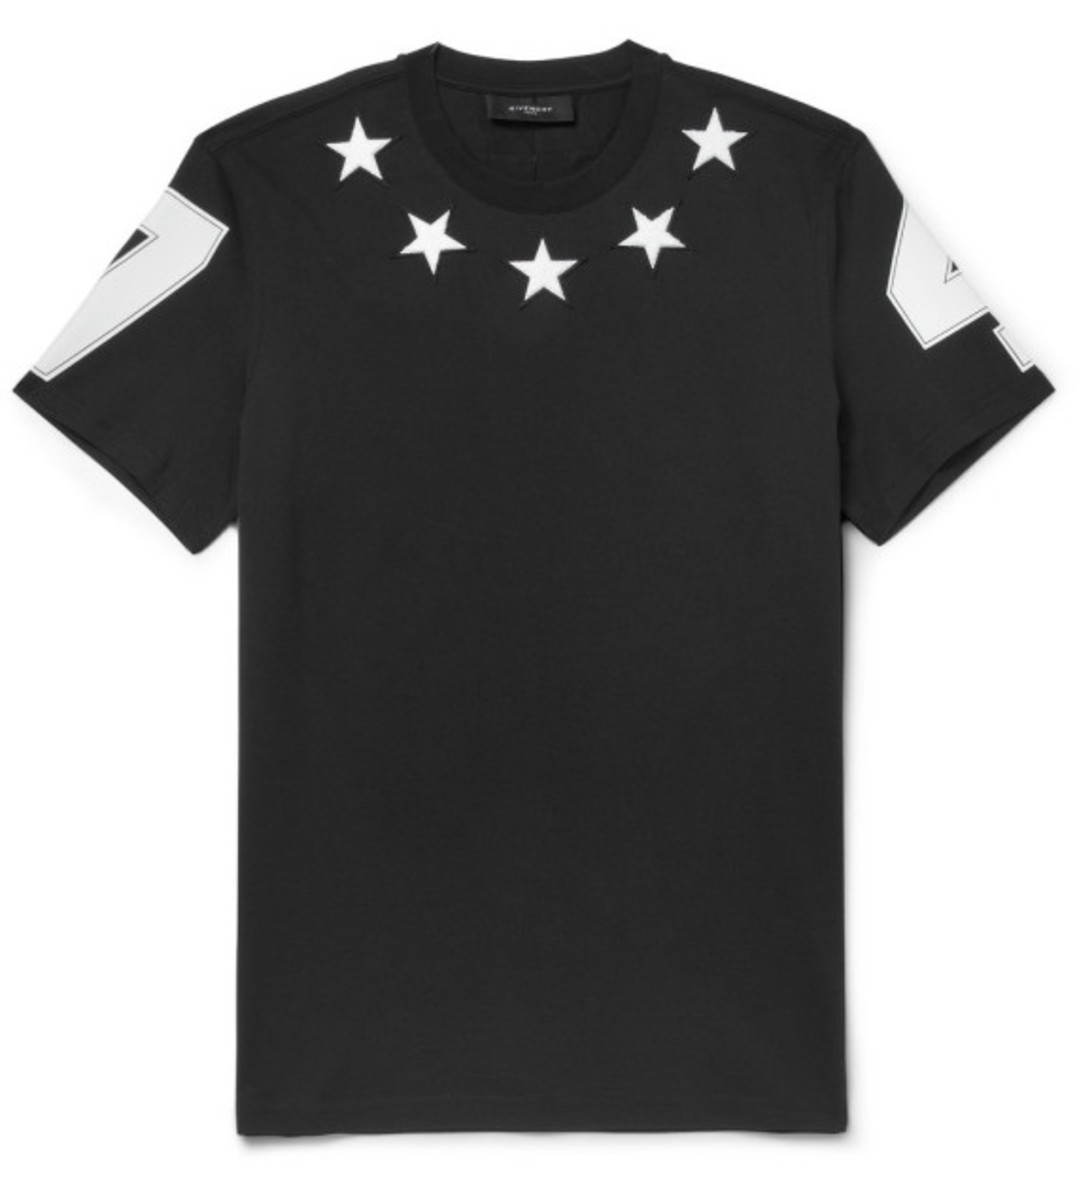 givenchy-cuban-fit-embroidered-star-tee-03